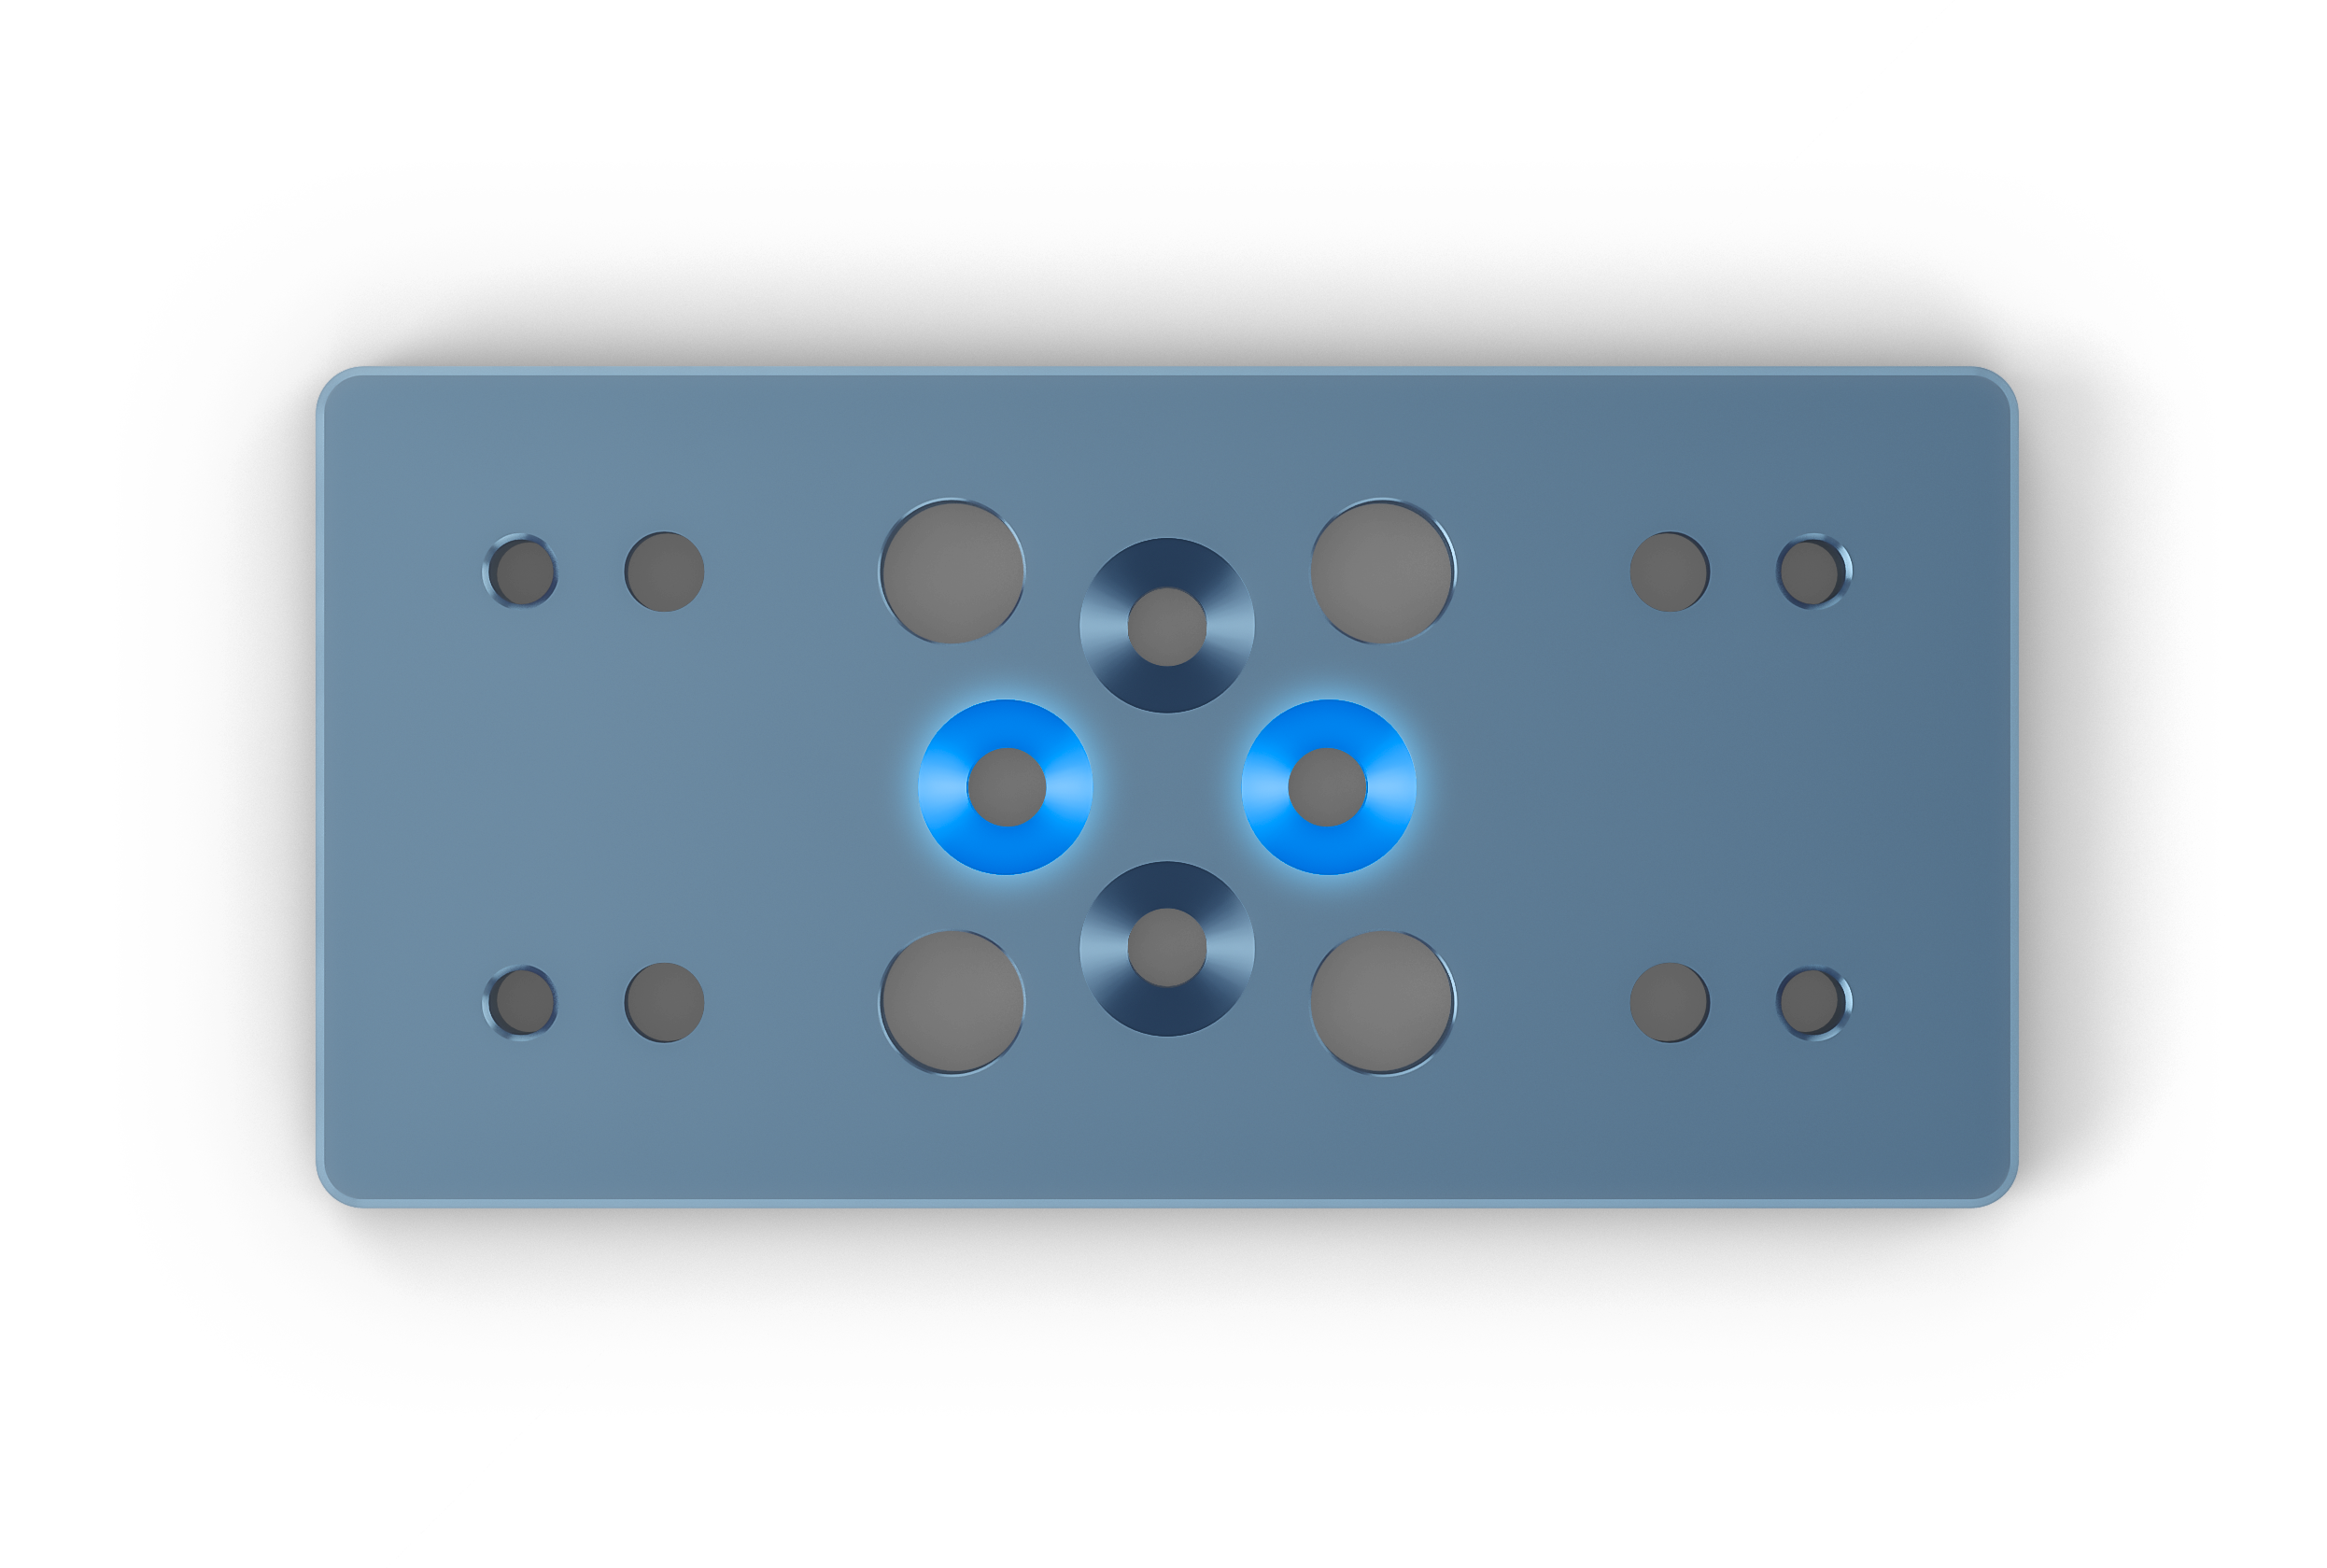 Figure 9: Countersinks (highlighted in blue) for attaching the mount via the actuator's t-slots.